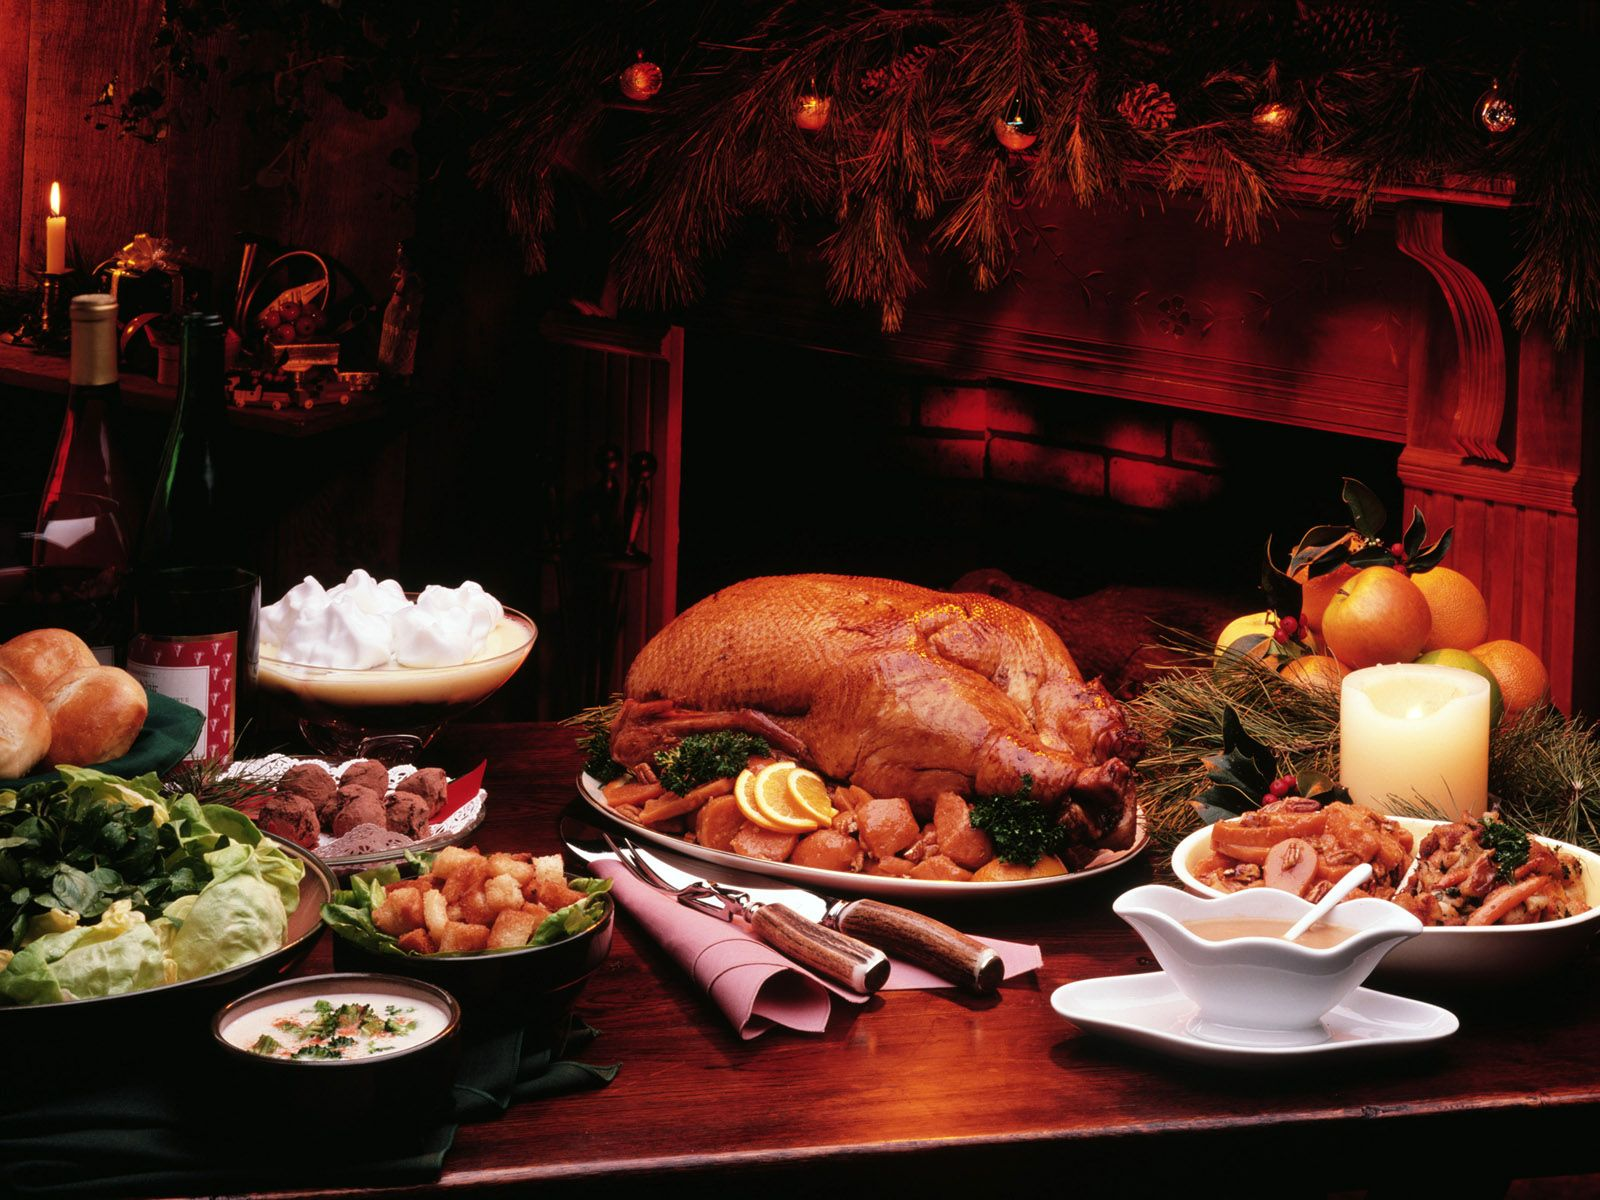 25 Happy Thanksgiving Day 2012 Hd Wallpapers Traditional Christmas Dinner Thanksgiving Feast Thanksgiving Meal Plan